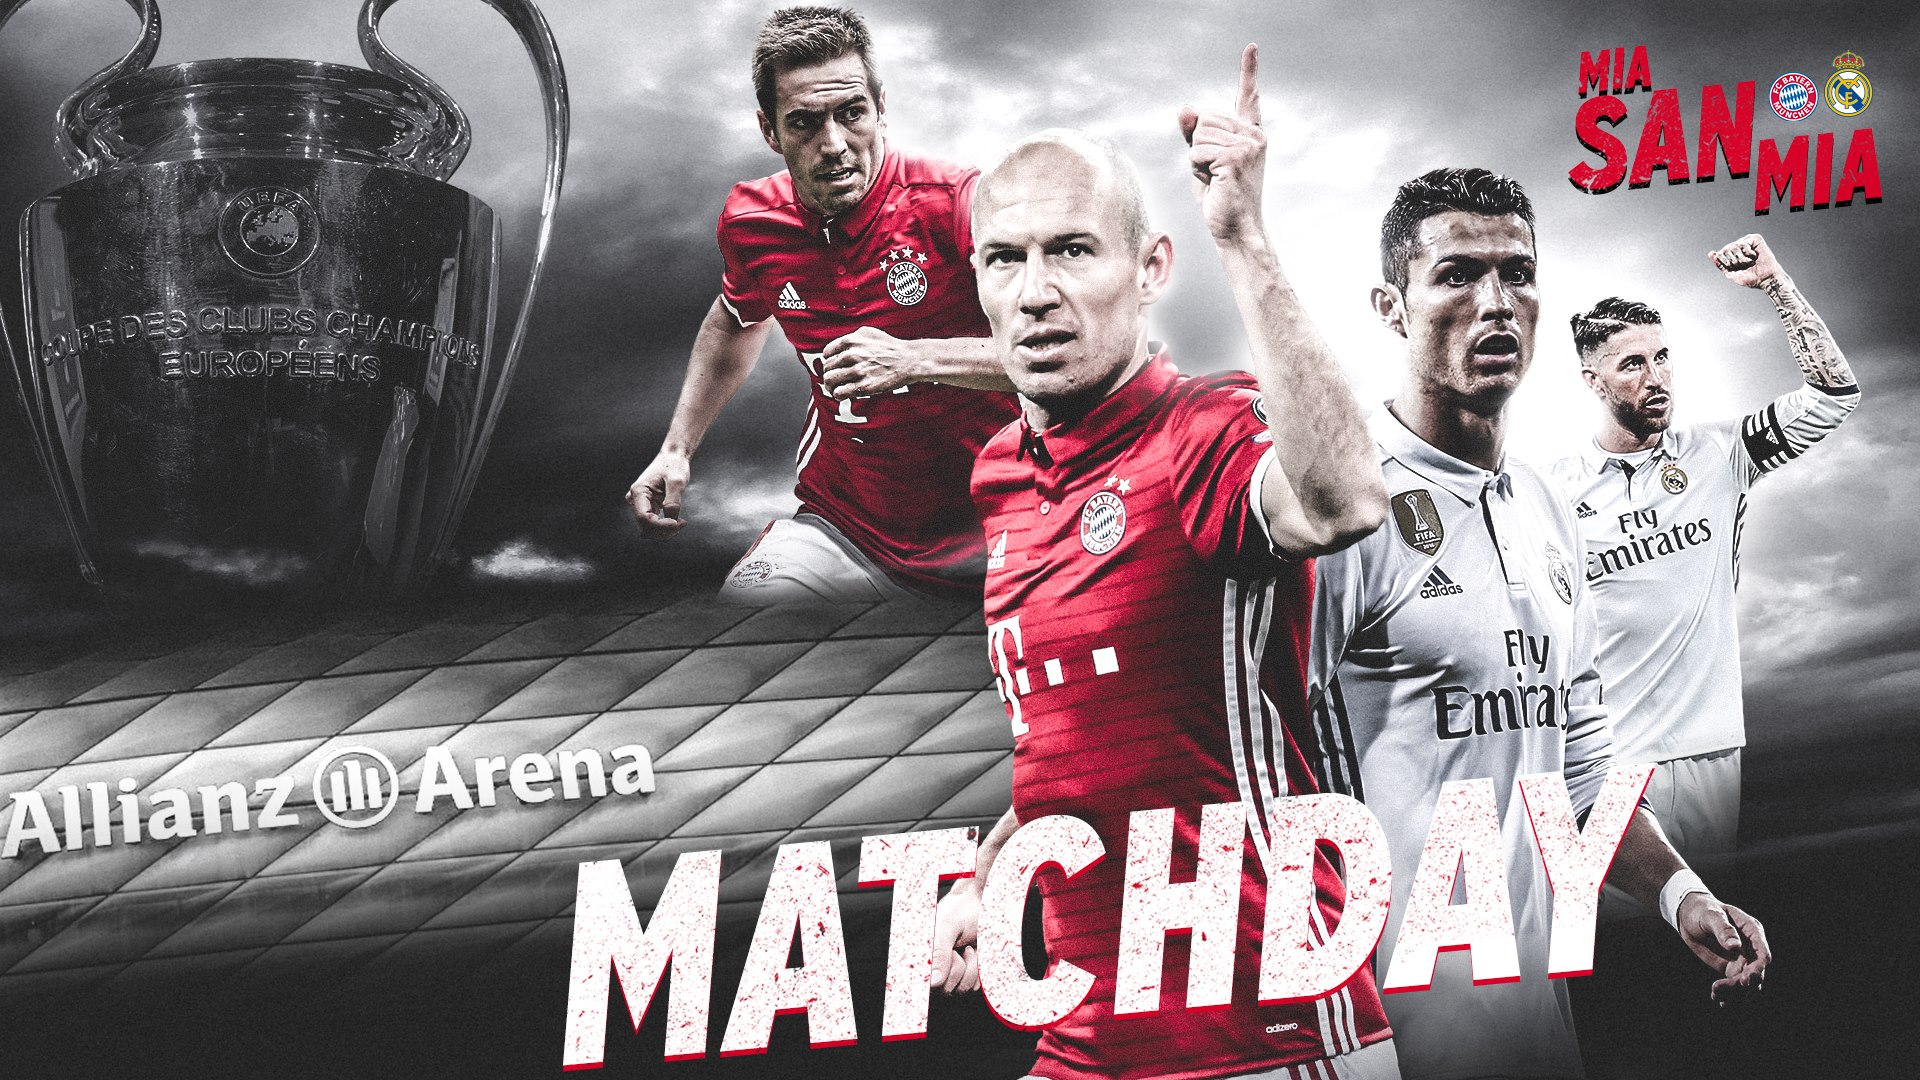 MIA SAN UEFA Champions League FC Bayern Munchen Vs Real Madrid CF